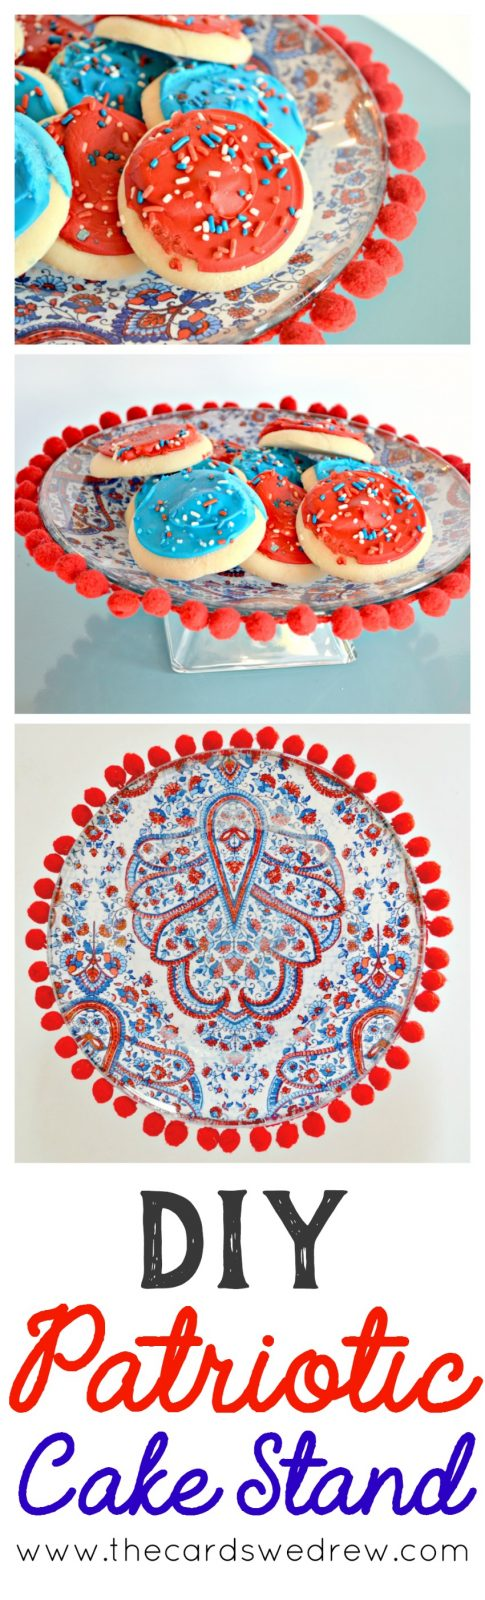 DIY Patriotic Cake Stand from The Cards We Drew